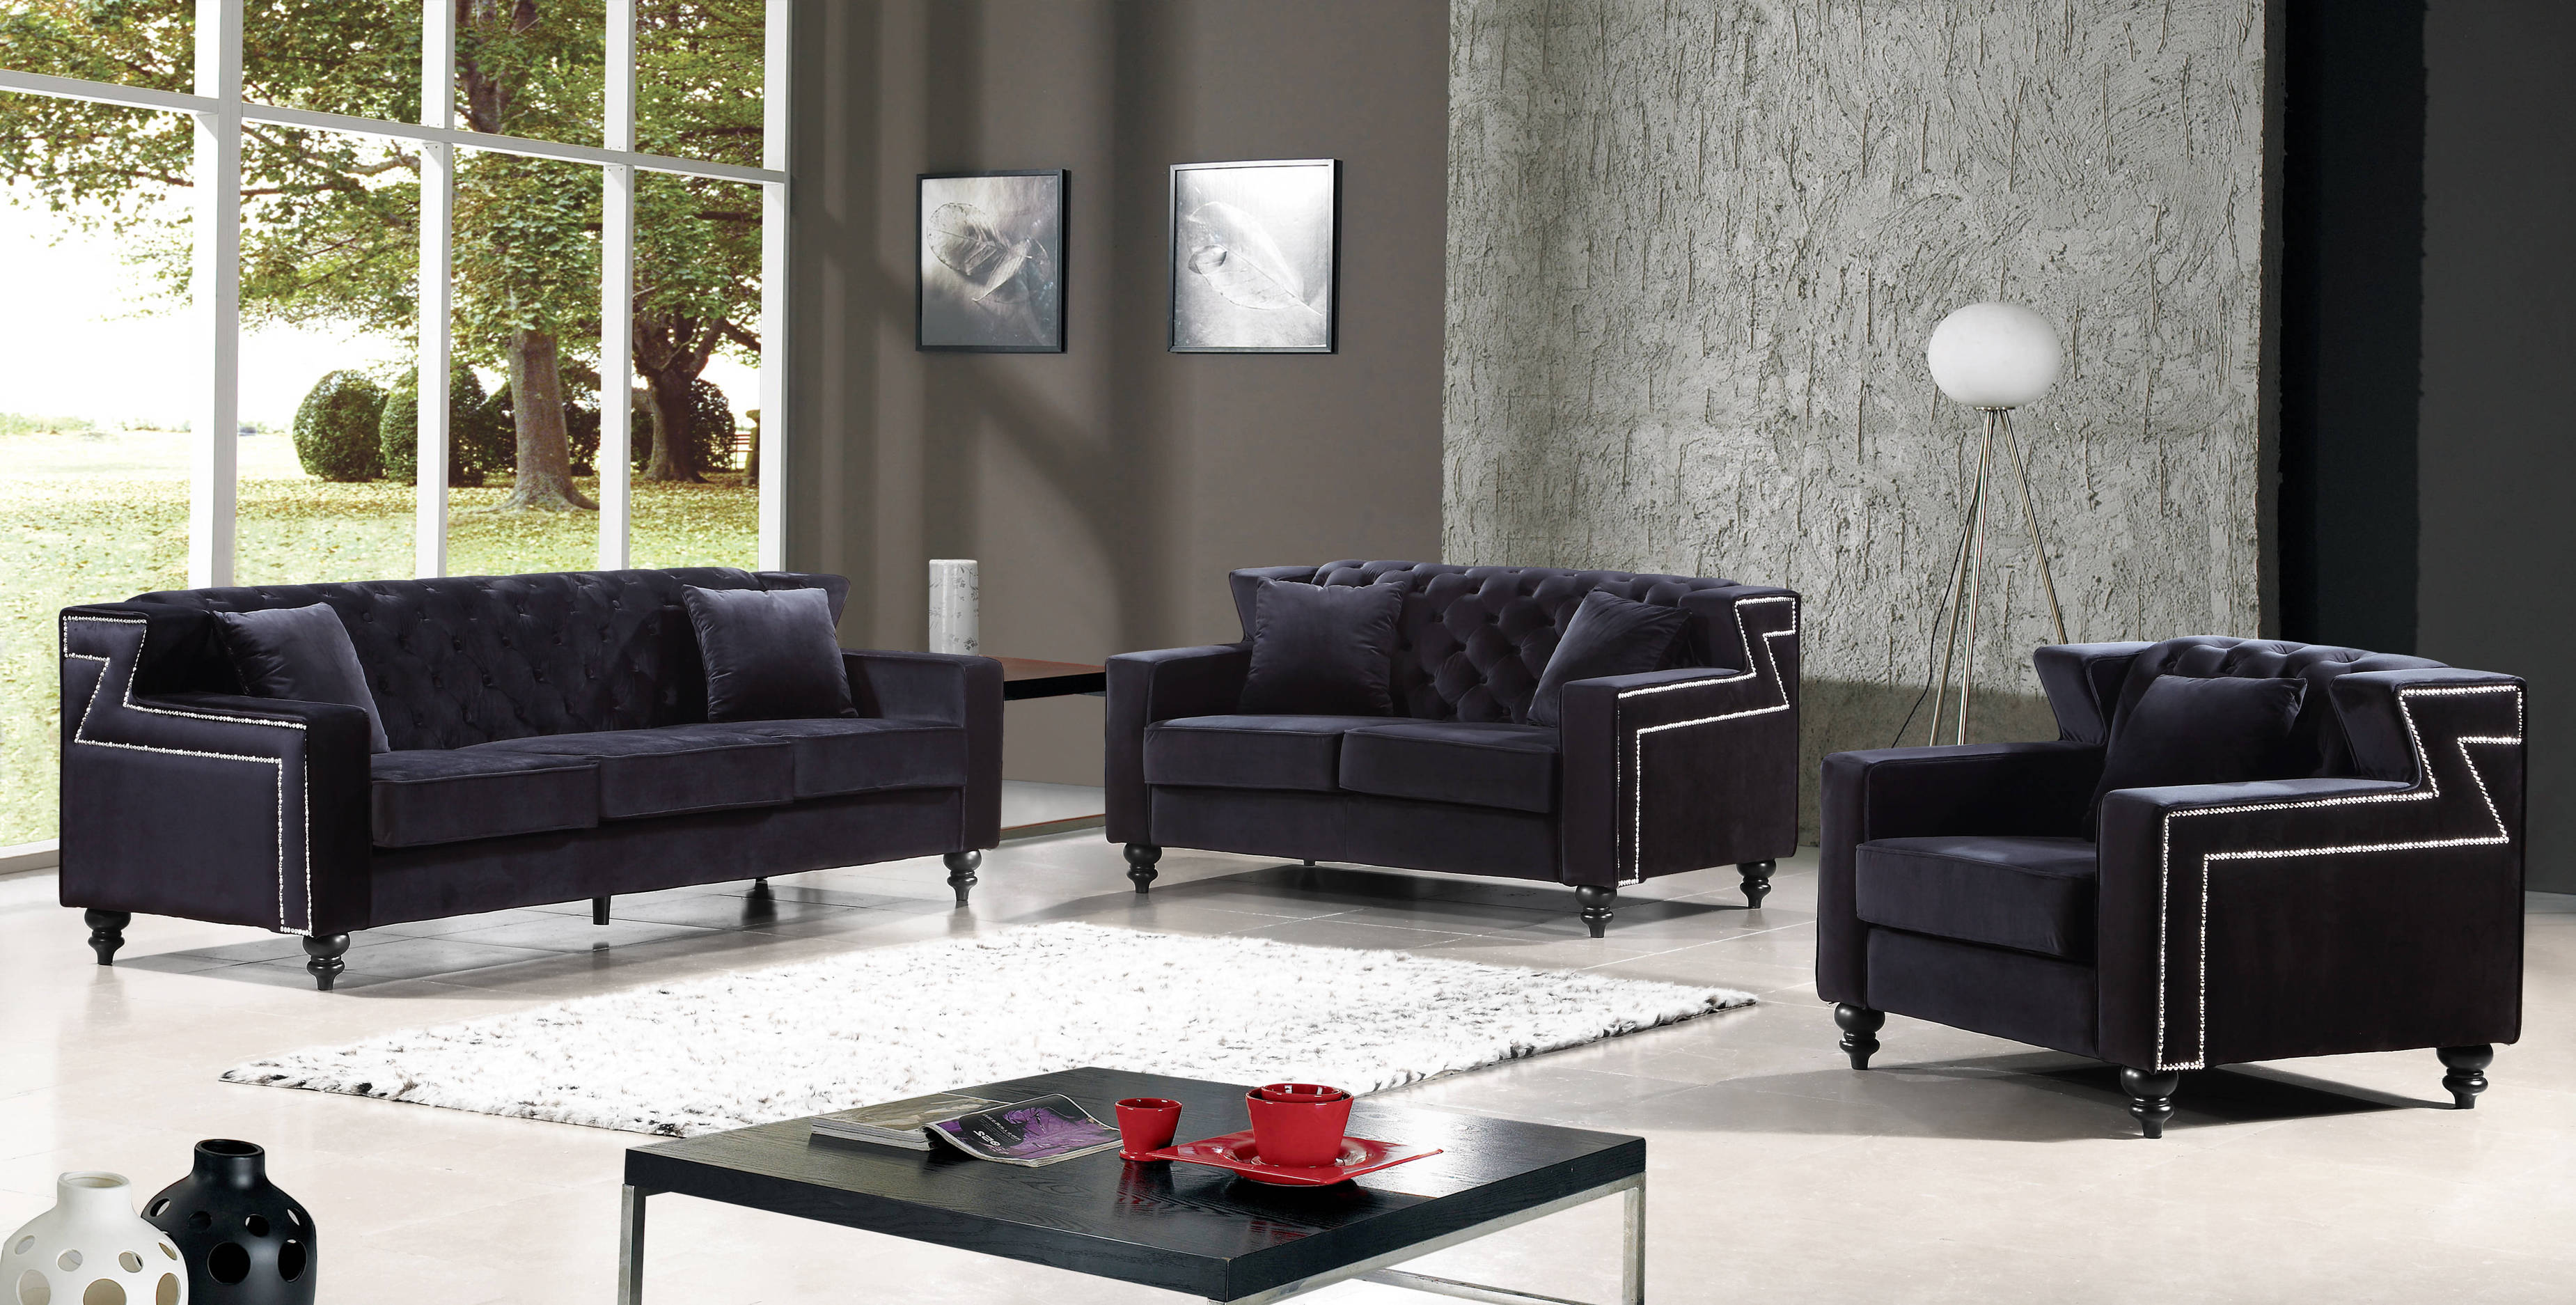 Harley black velvet tufted back silver nailheads living for Living room set deals